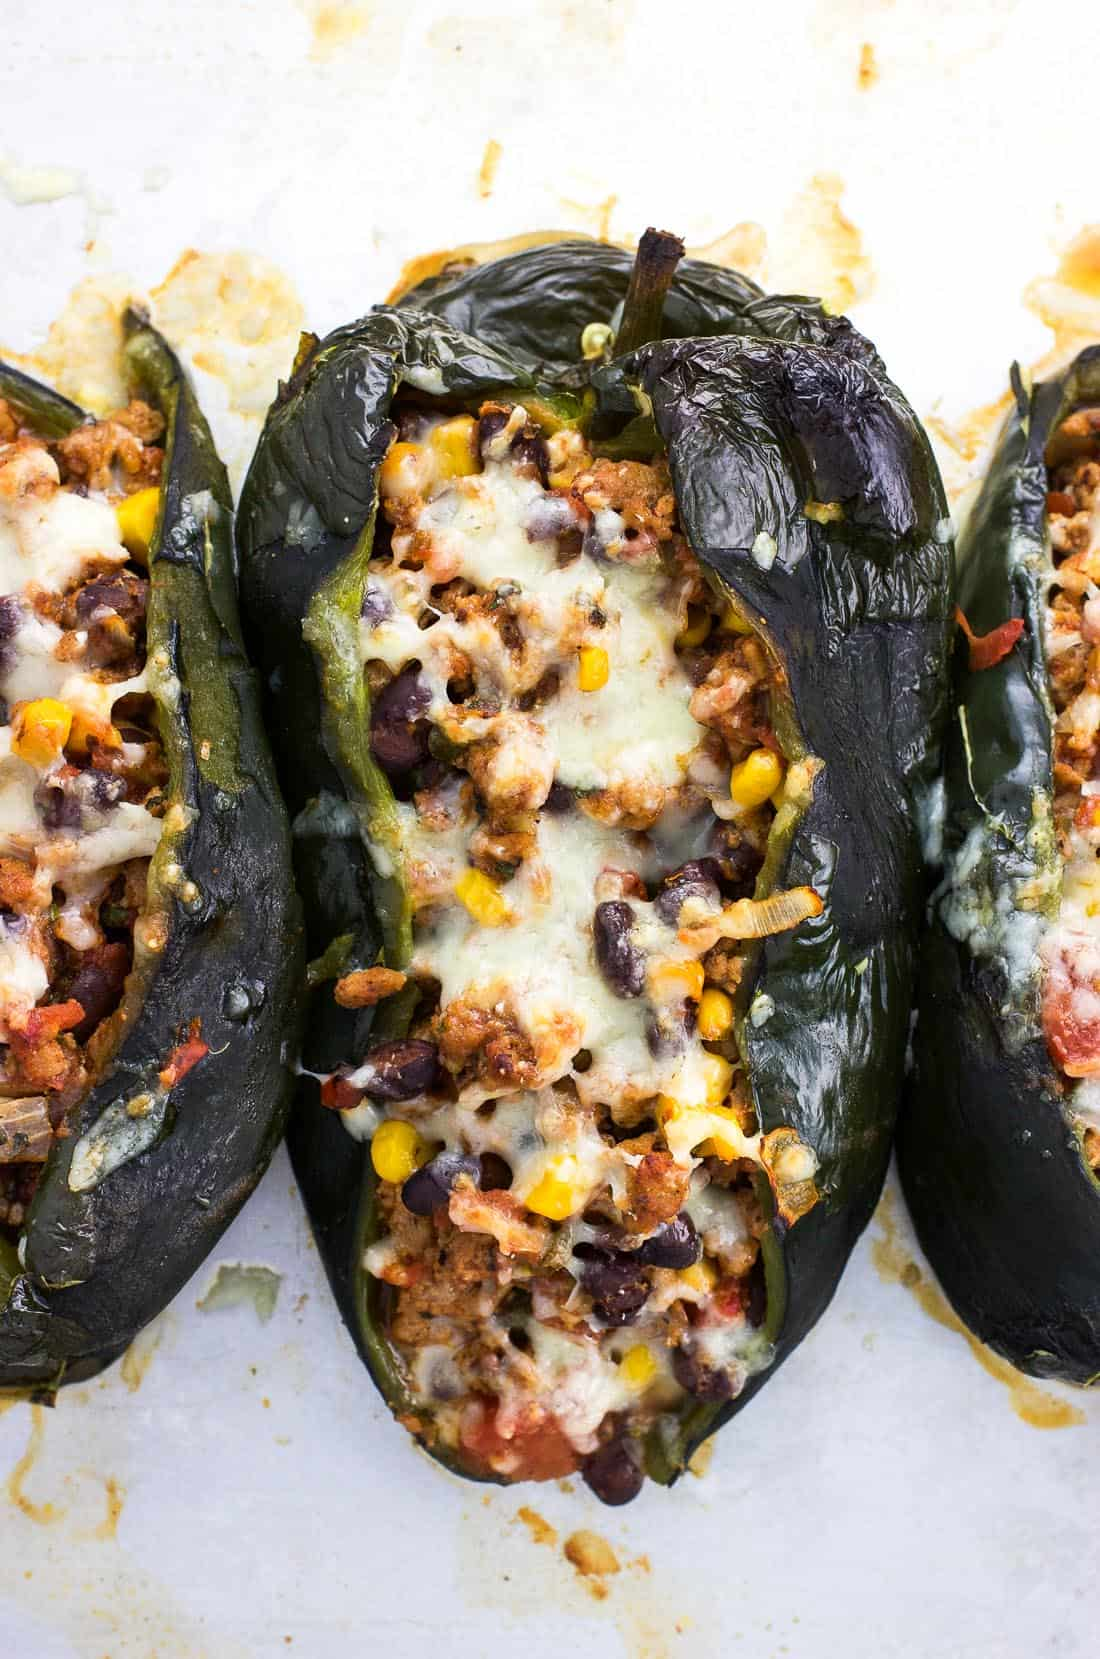 An overhead shot of roasted and stuffed poblano peppers on a metal baking sheet